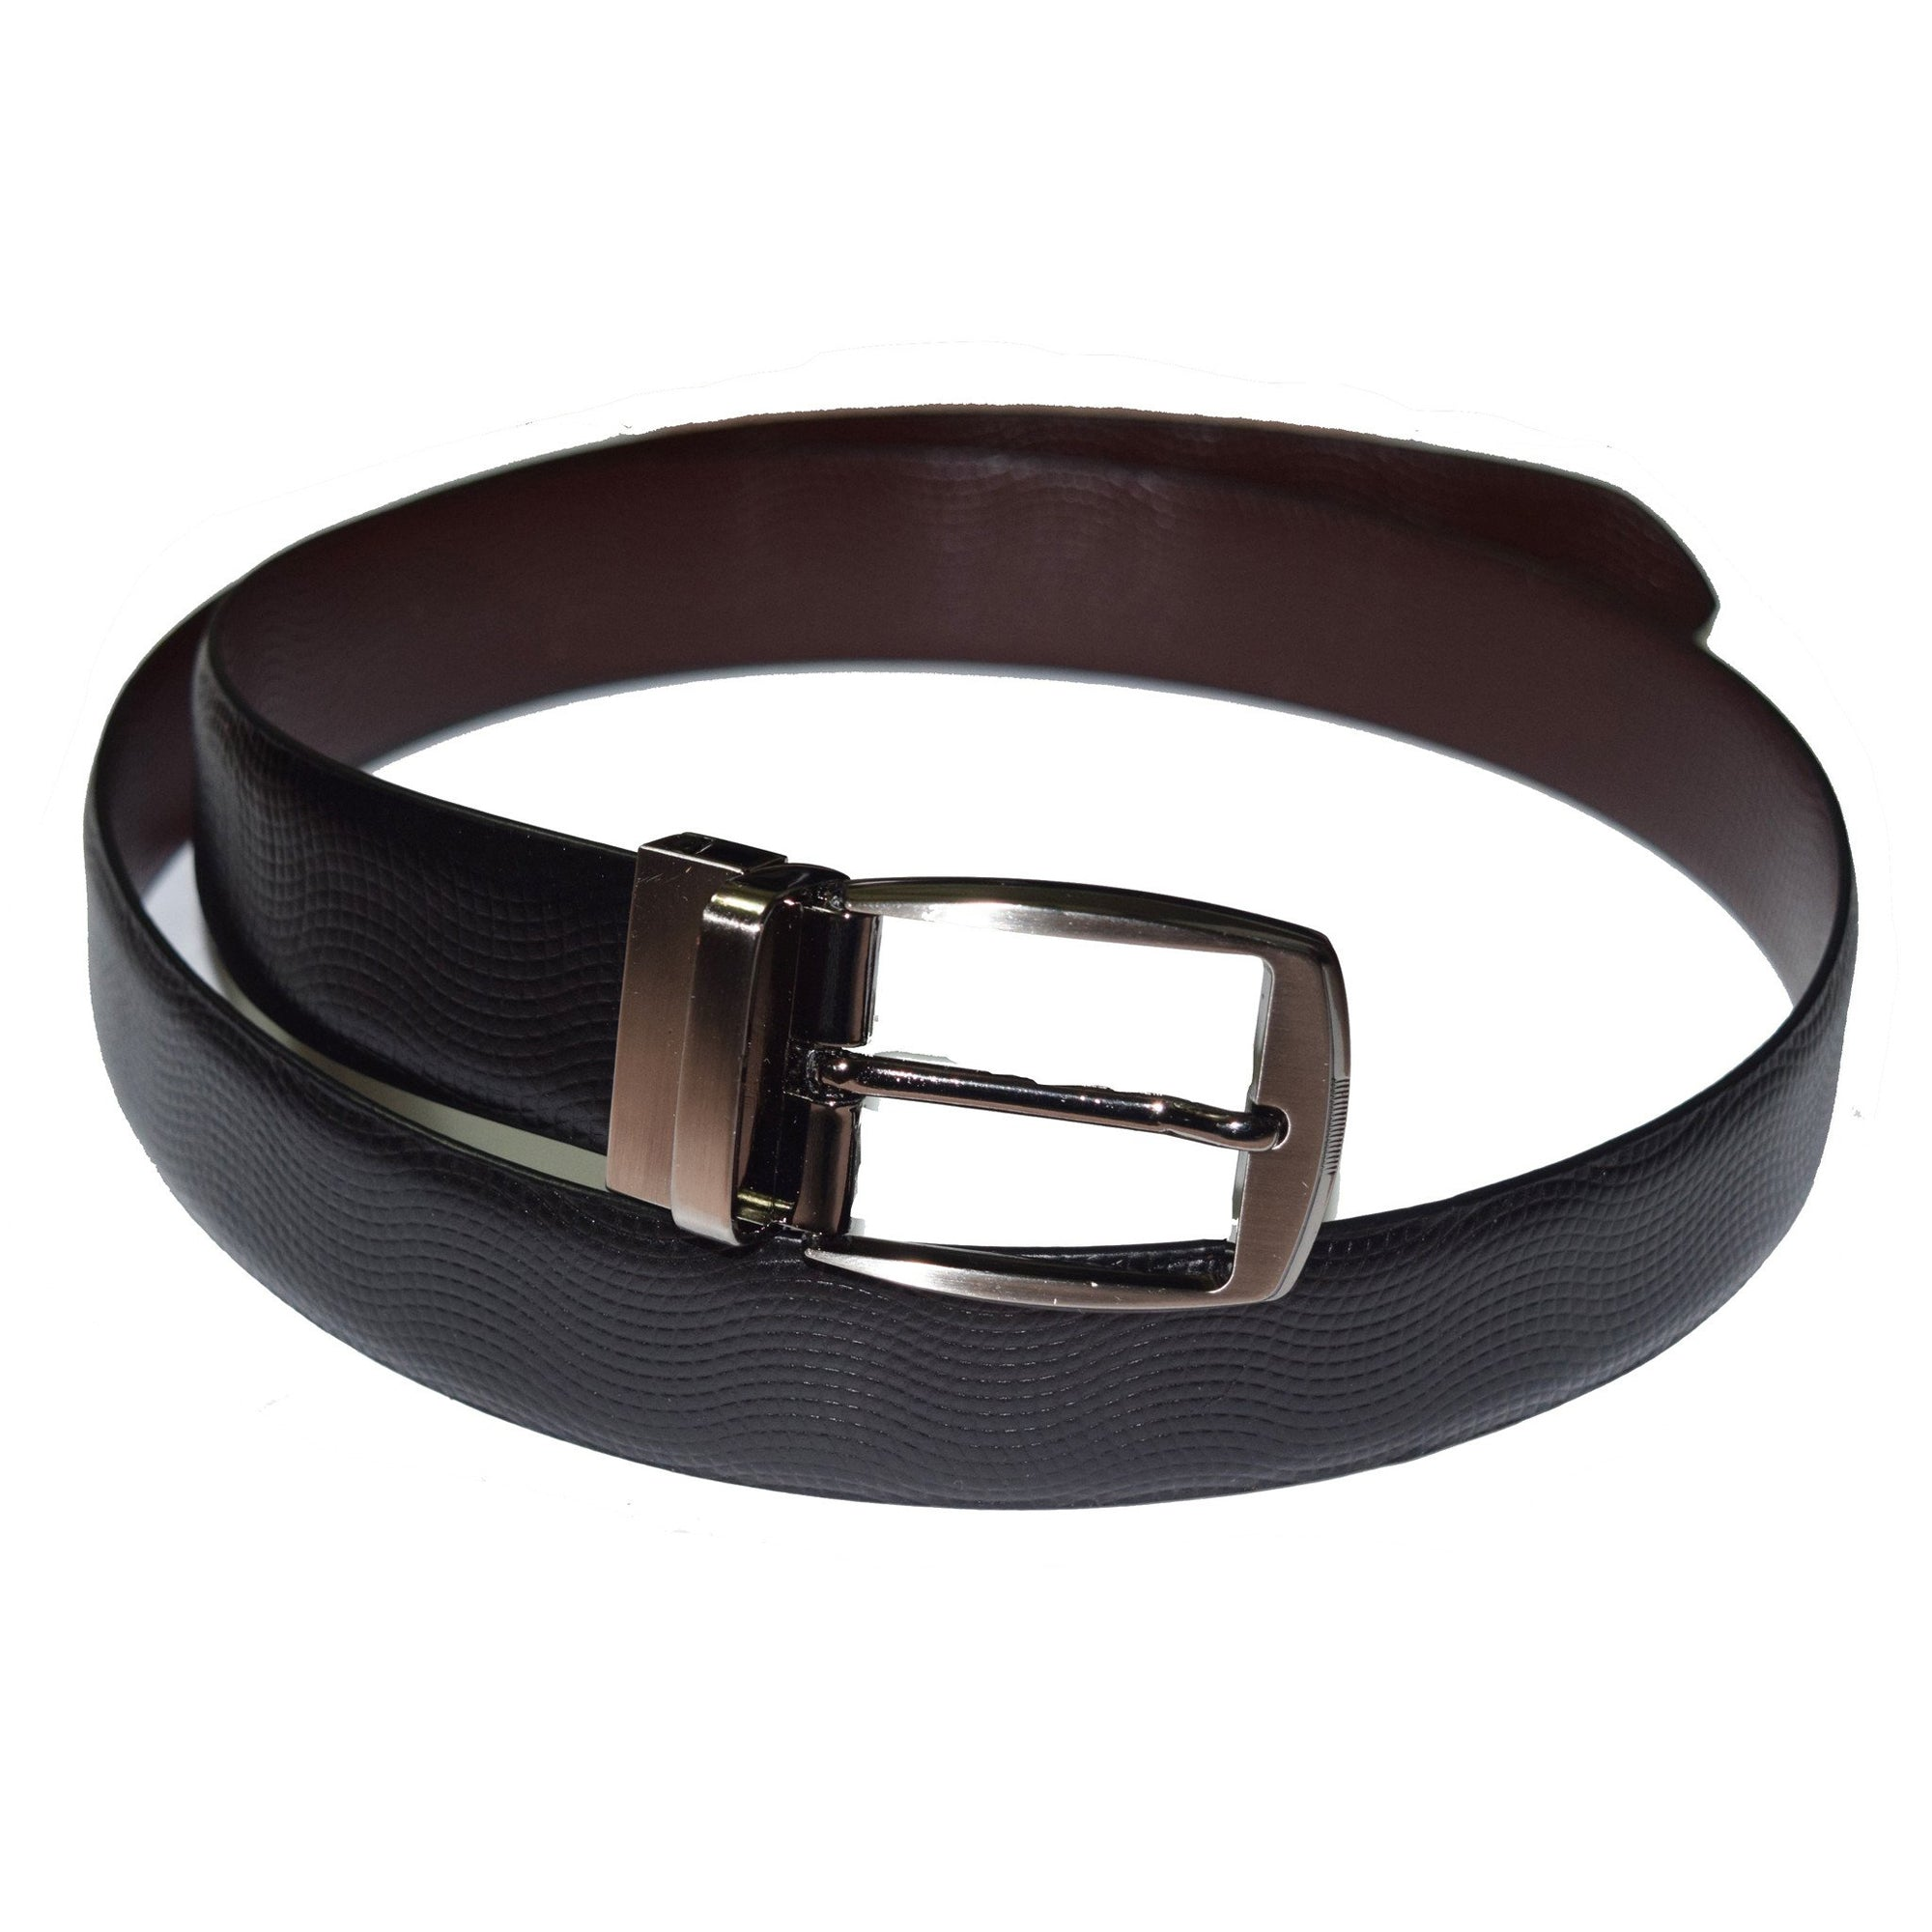 Black and brown reversible leather belt with wave print - Lusso Leather - 1